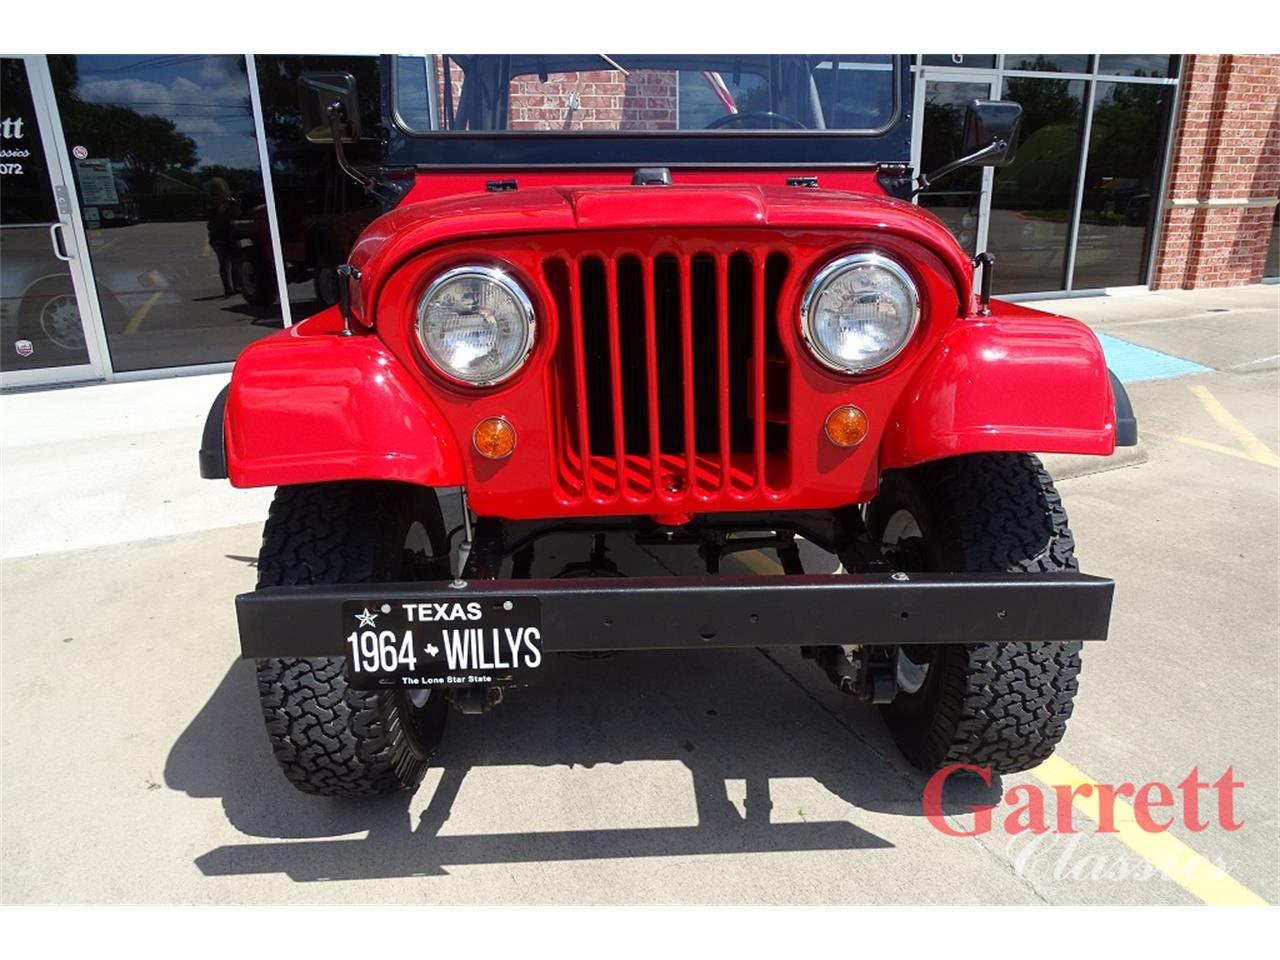 Large Picture of Classic '64 Jeep located in Lewisville TEXAS (TX) - $16,500.00 Offered by Garrett Classics - Q4KI